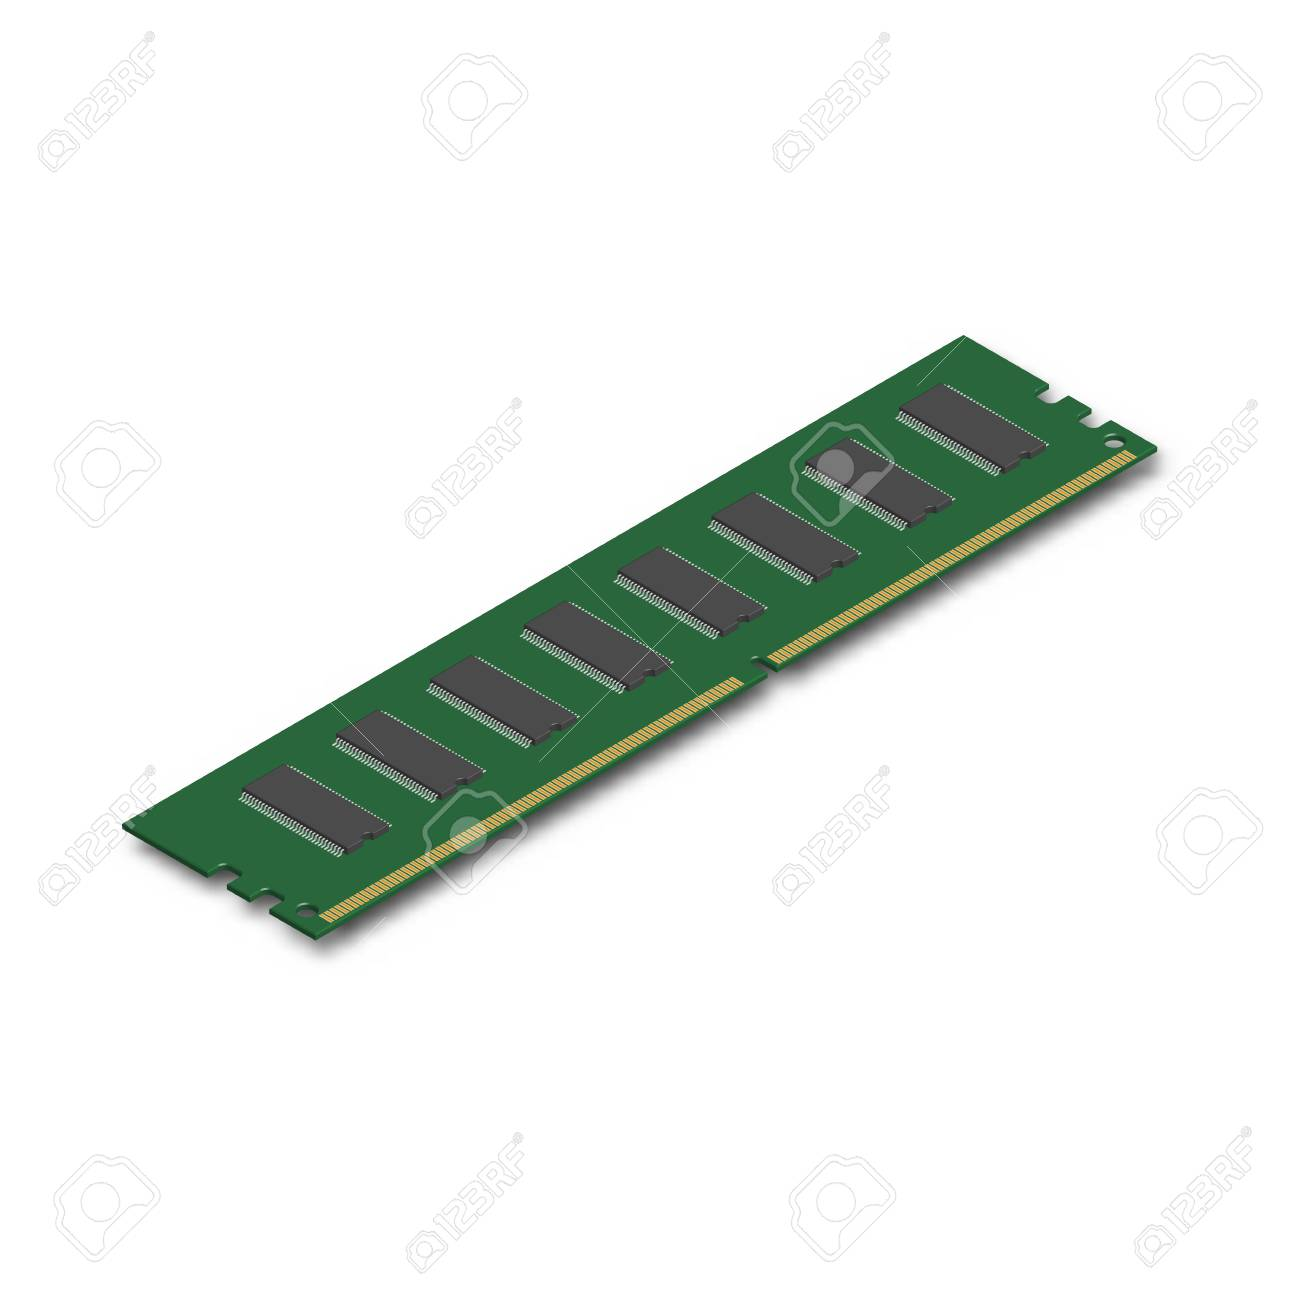 RAM module, isolated on white background. Element for the design of digital devices and computer accessories. 3D isometric style, vector illustration. - 90411704